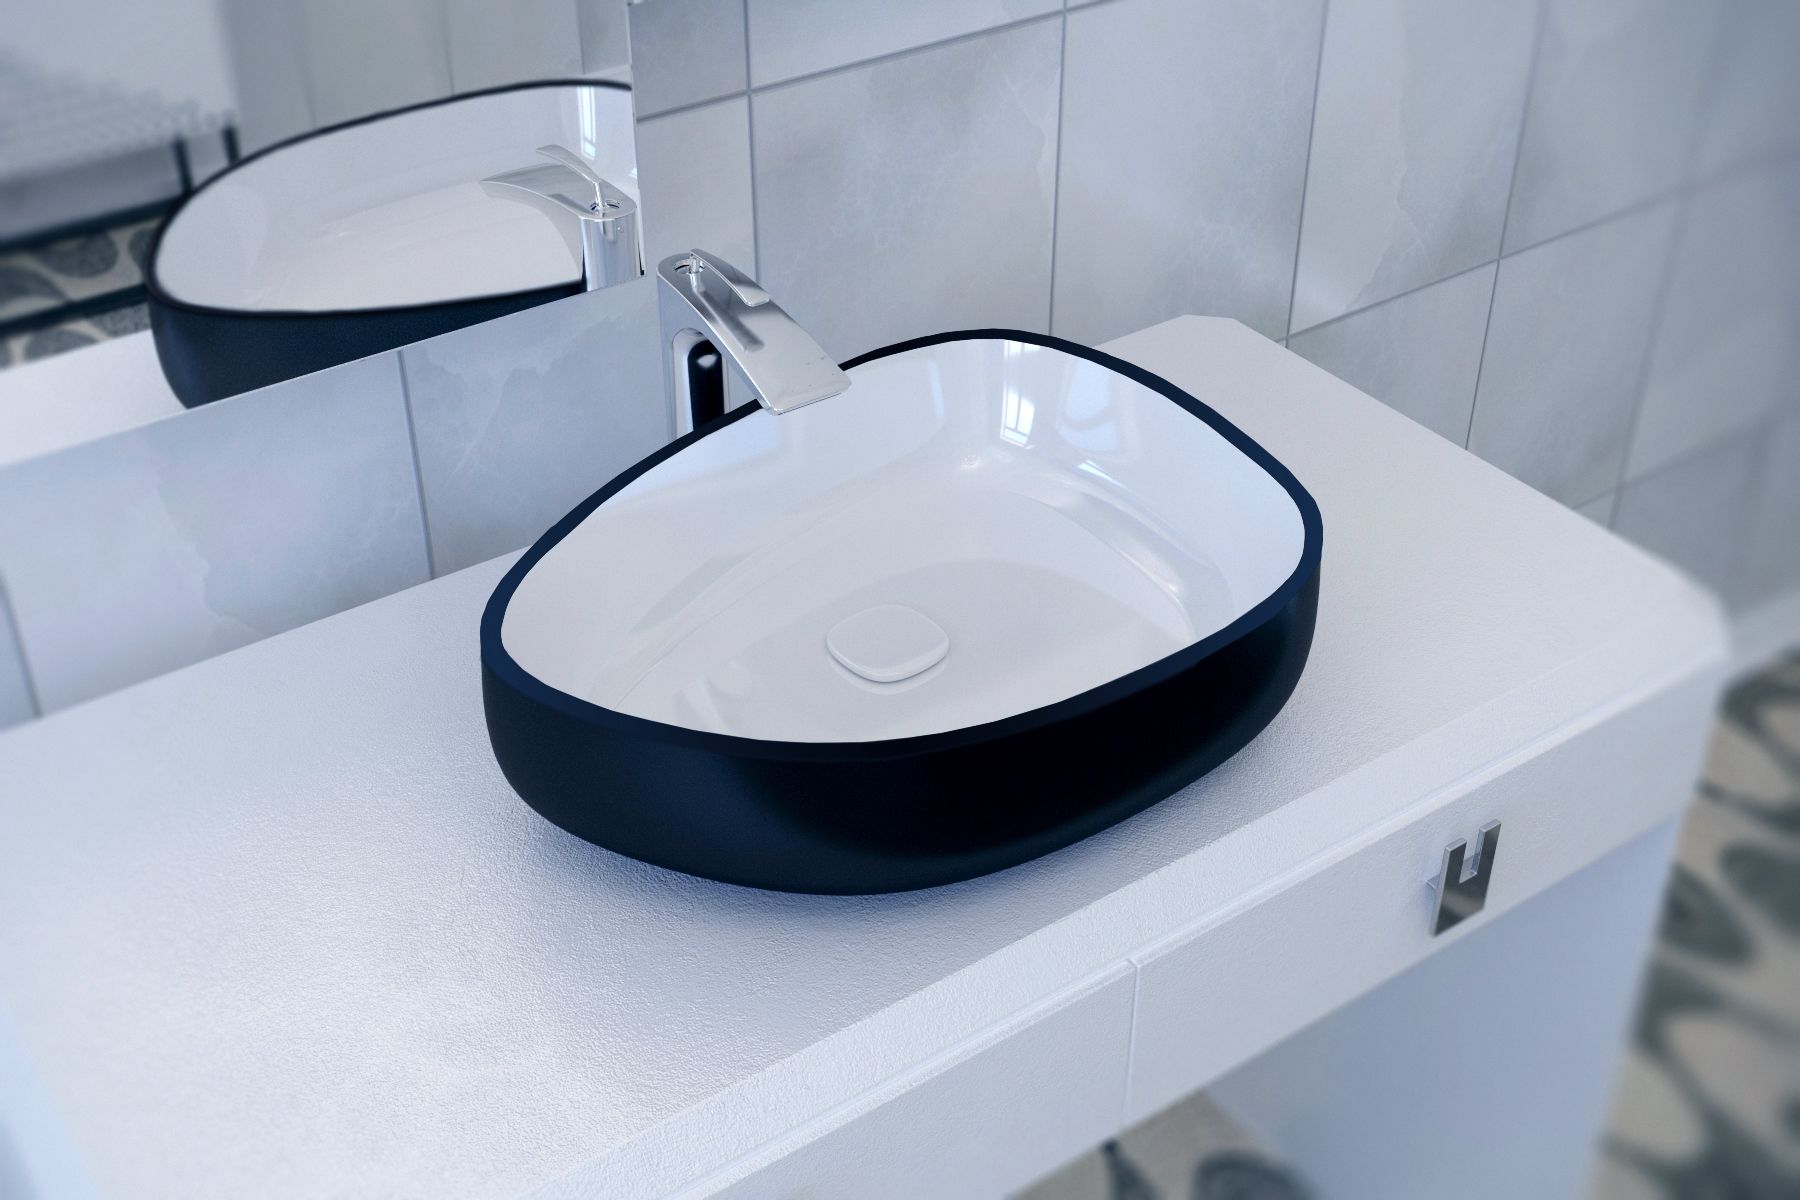 Metamorfosi Black Wht Shapeless Ceramic Bathroom Vessel Sink (1)